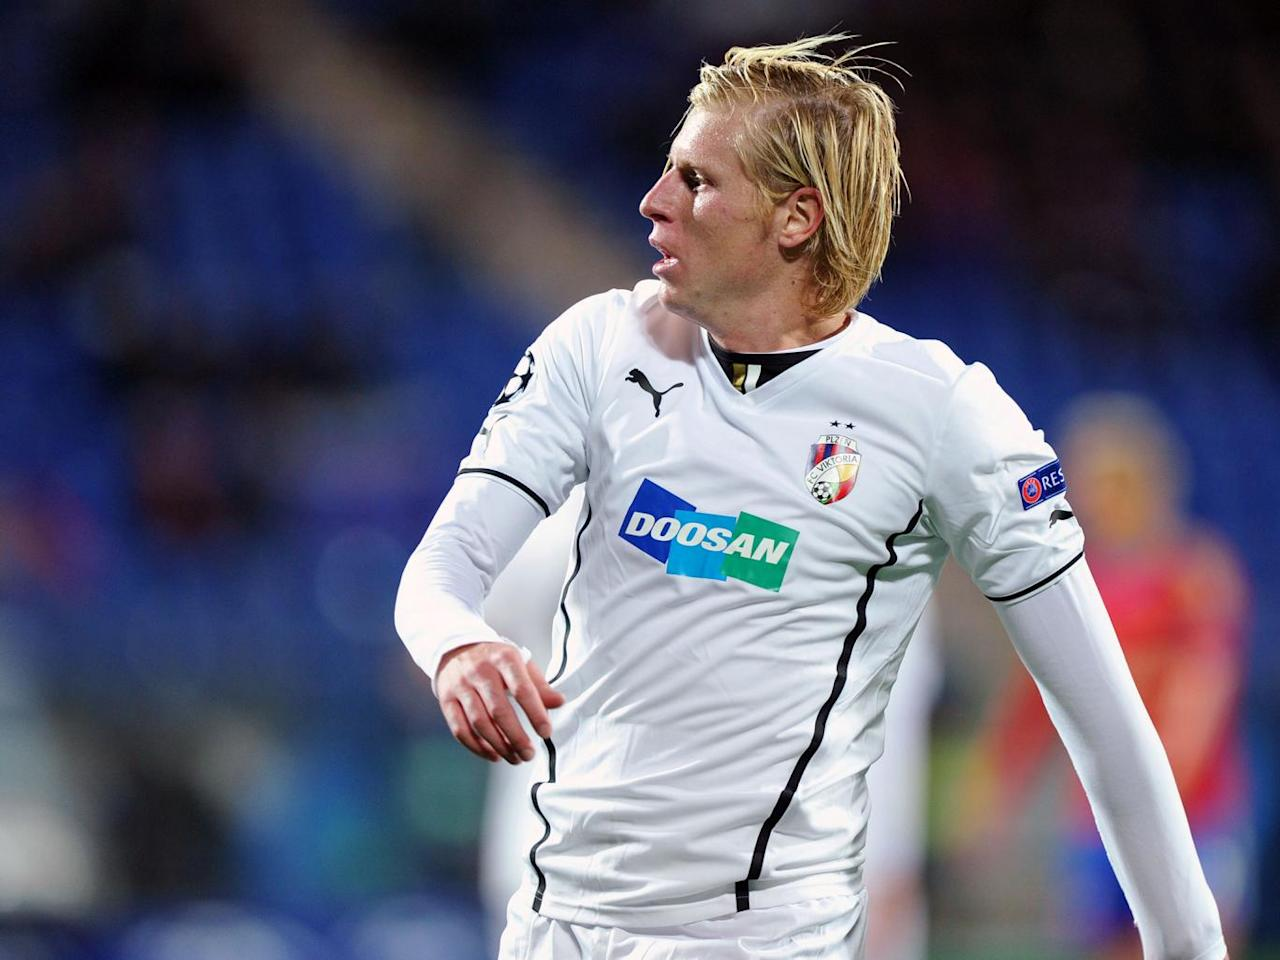 Frantisek Rajtoral dead: Former Czech Republic international found hanged after killing himself, aged 31